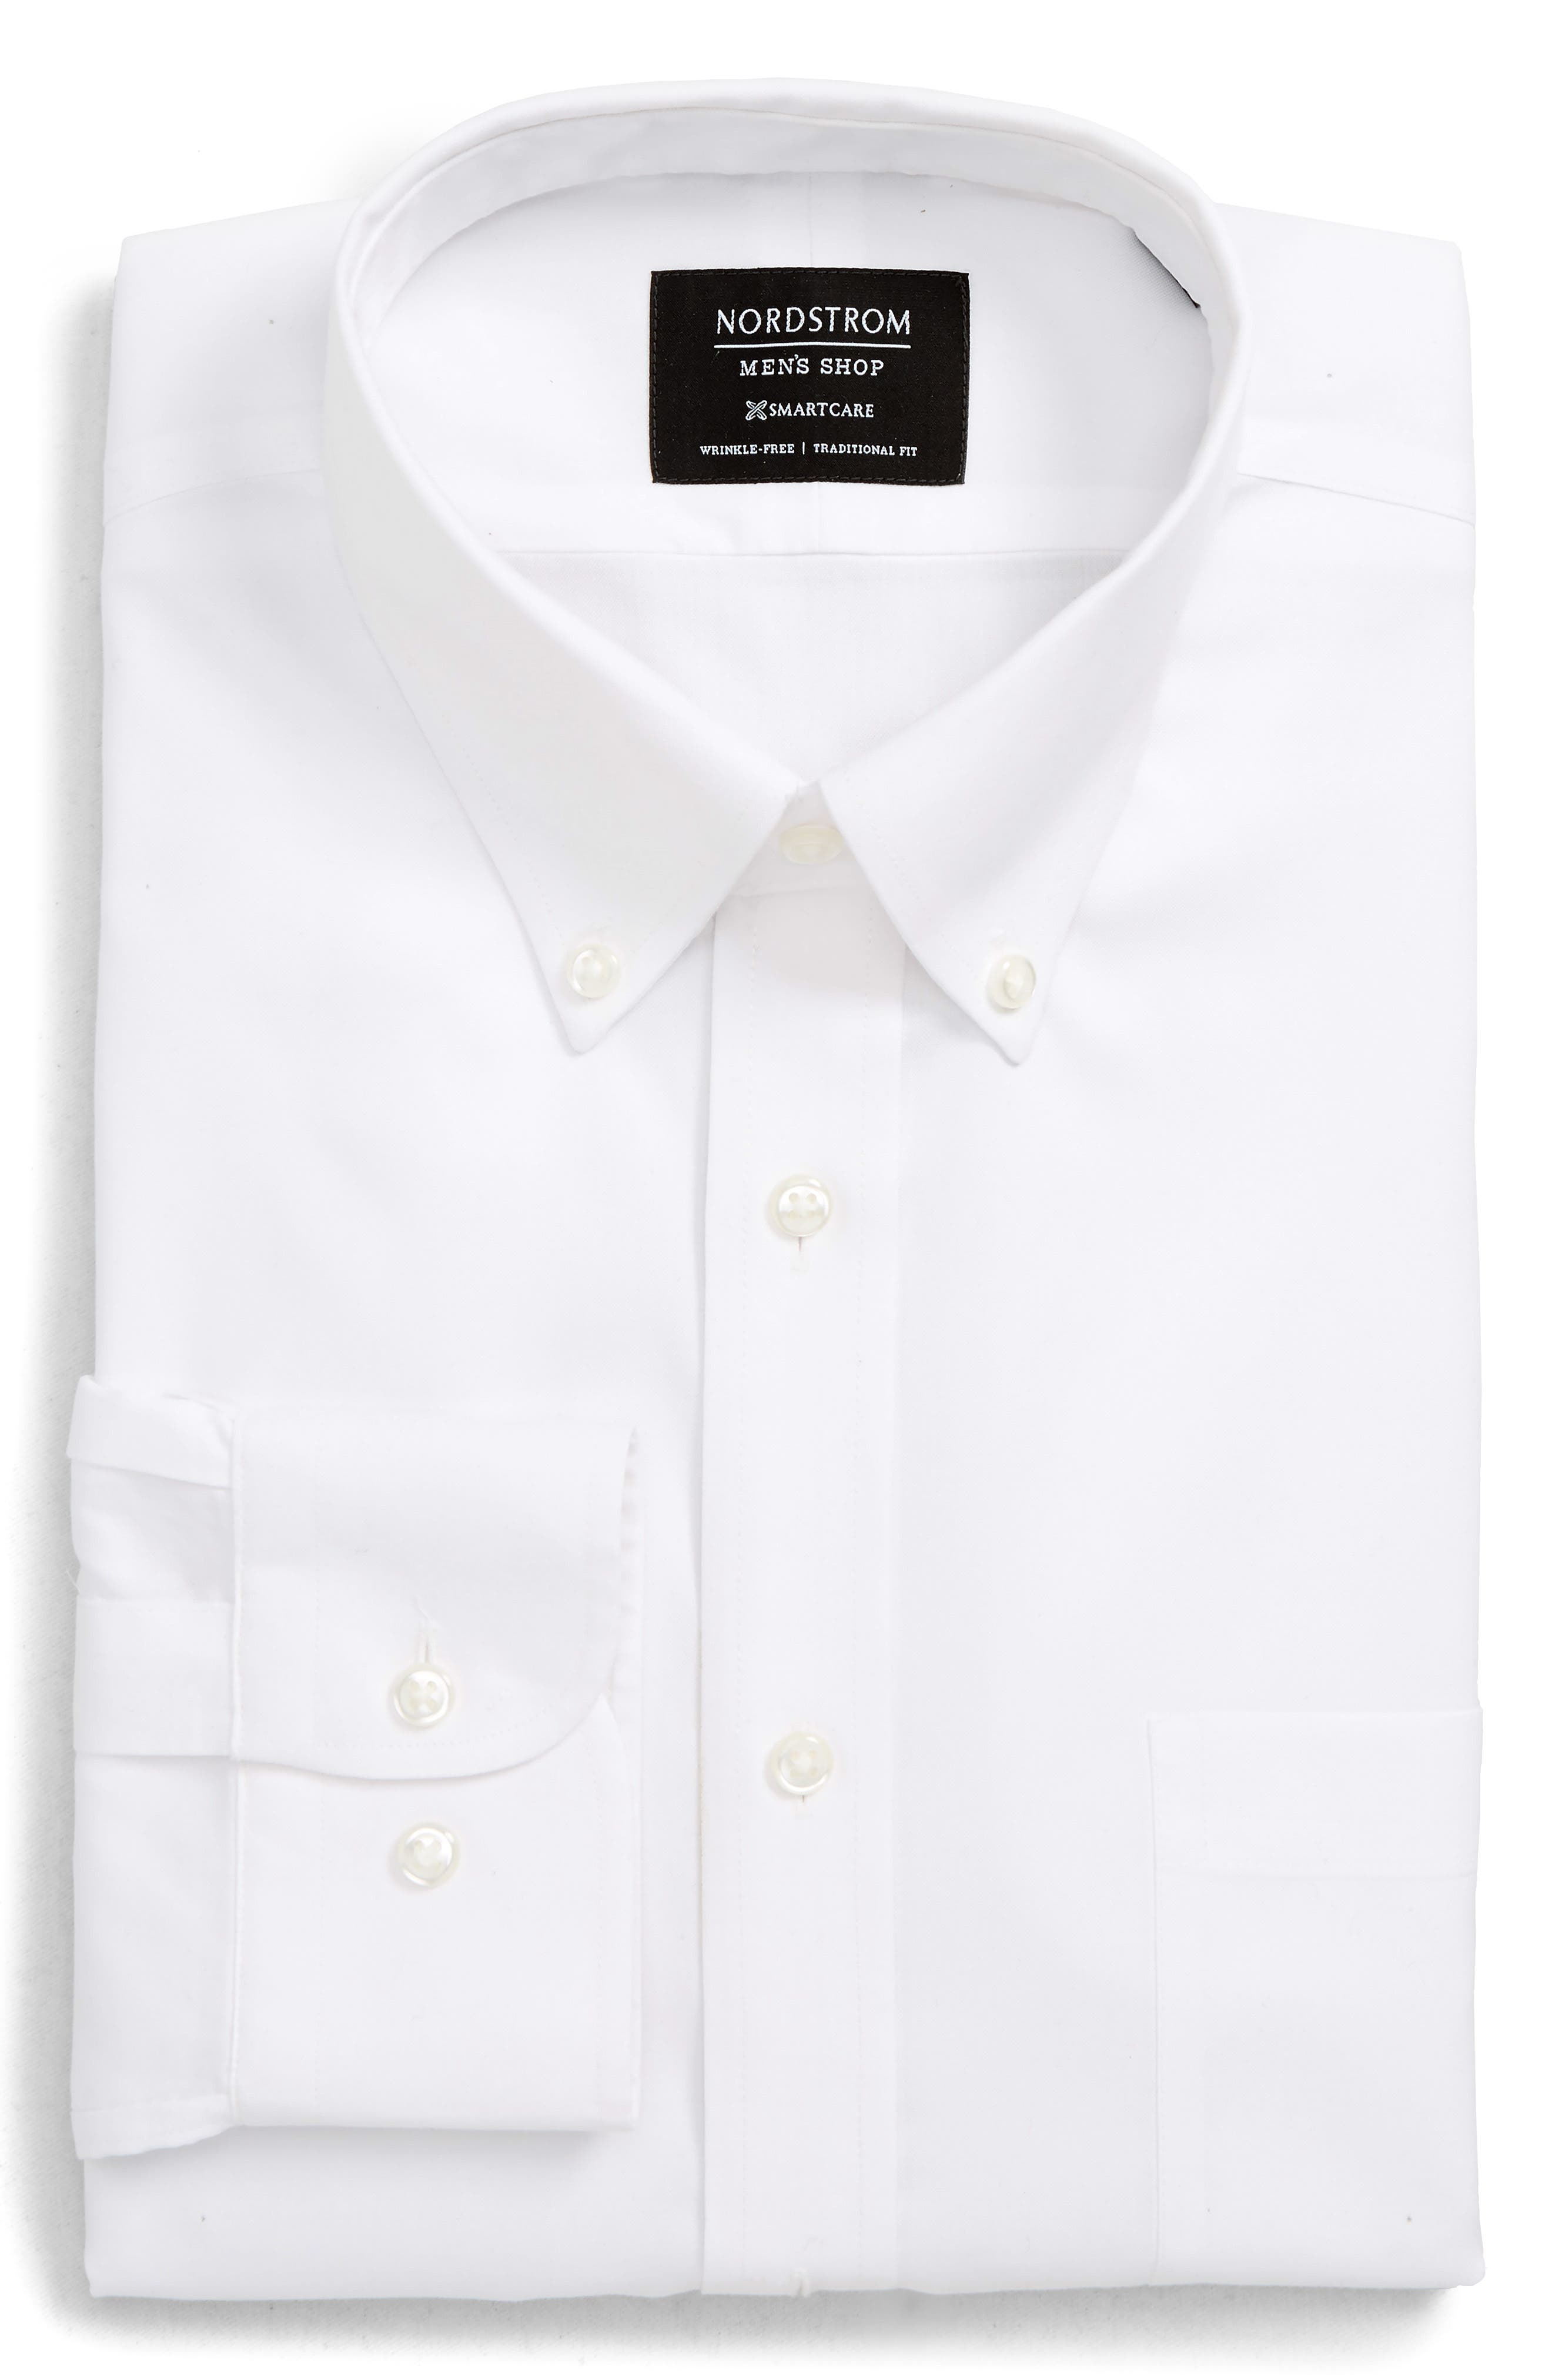 Nordstrom Shop Smartcare(TM) Traditional Fit Pinpoint Dress Shirt, 5.5 34/35 - White